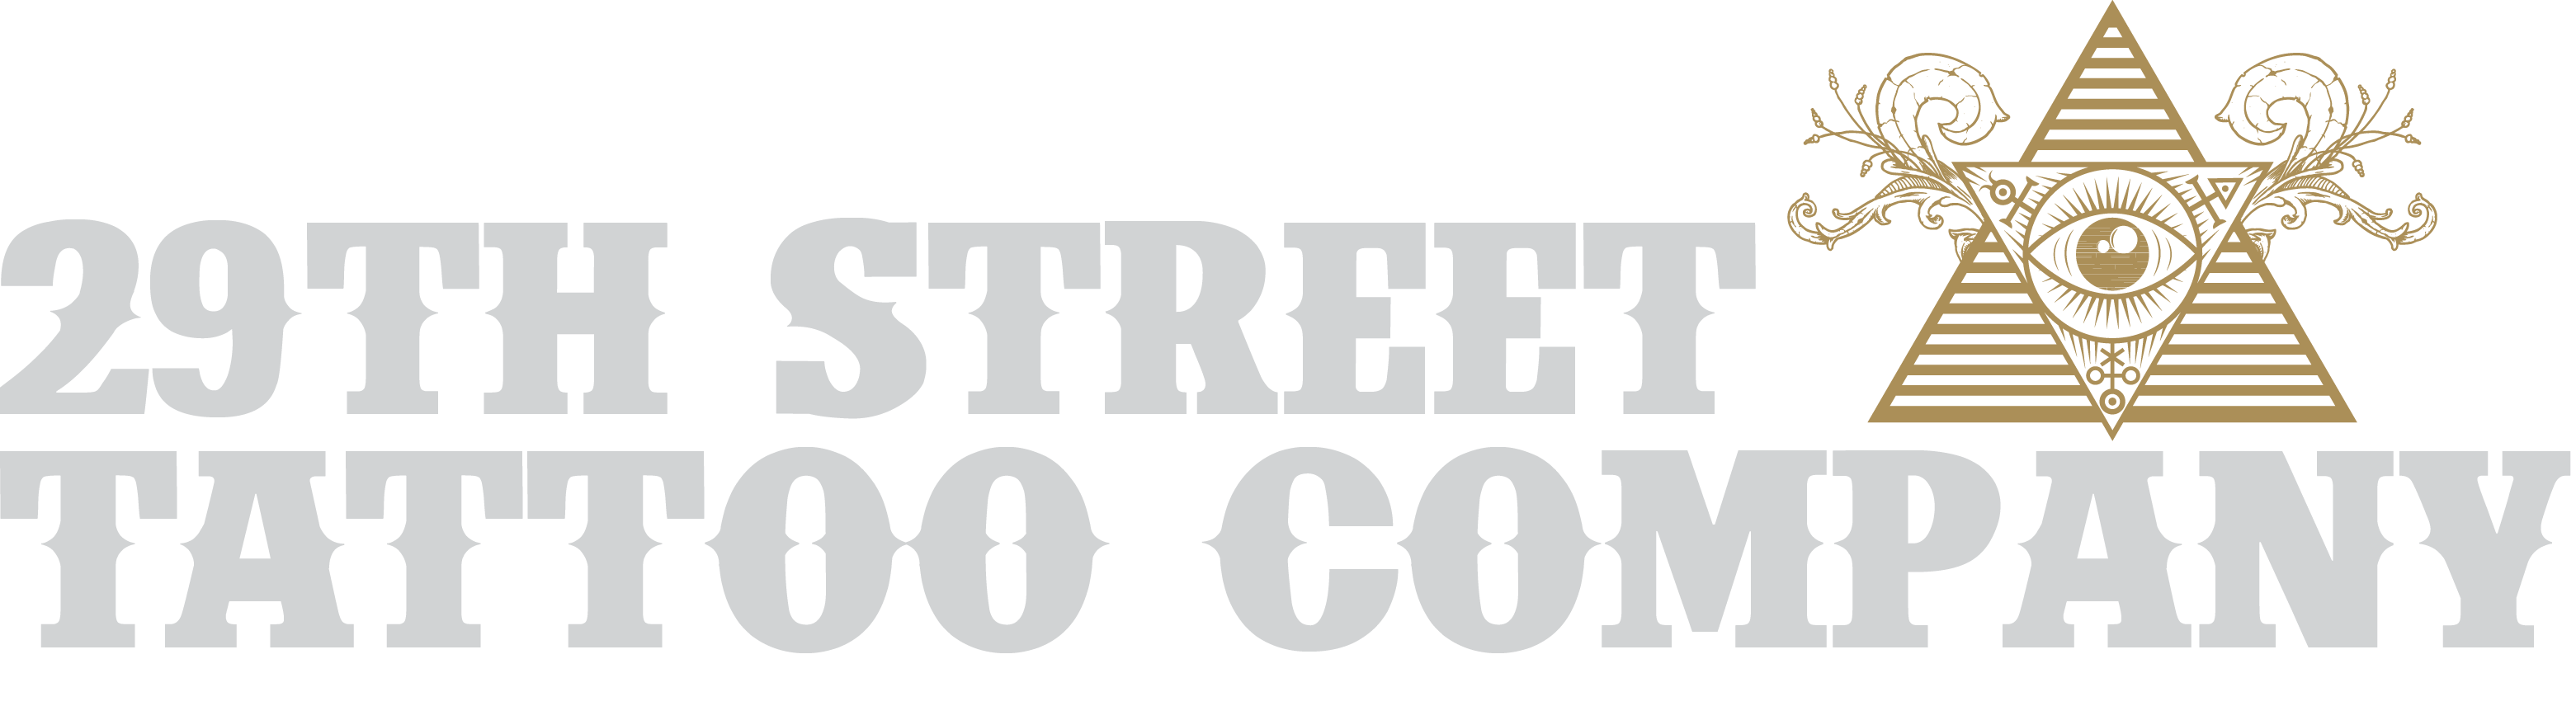 29th Street Tattoo logo